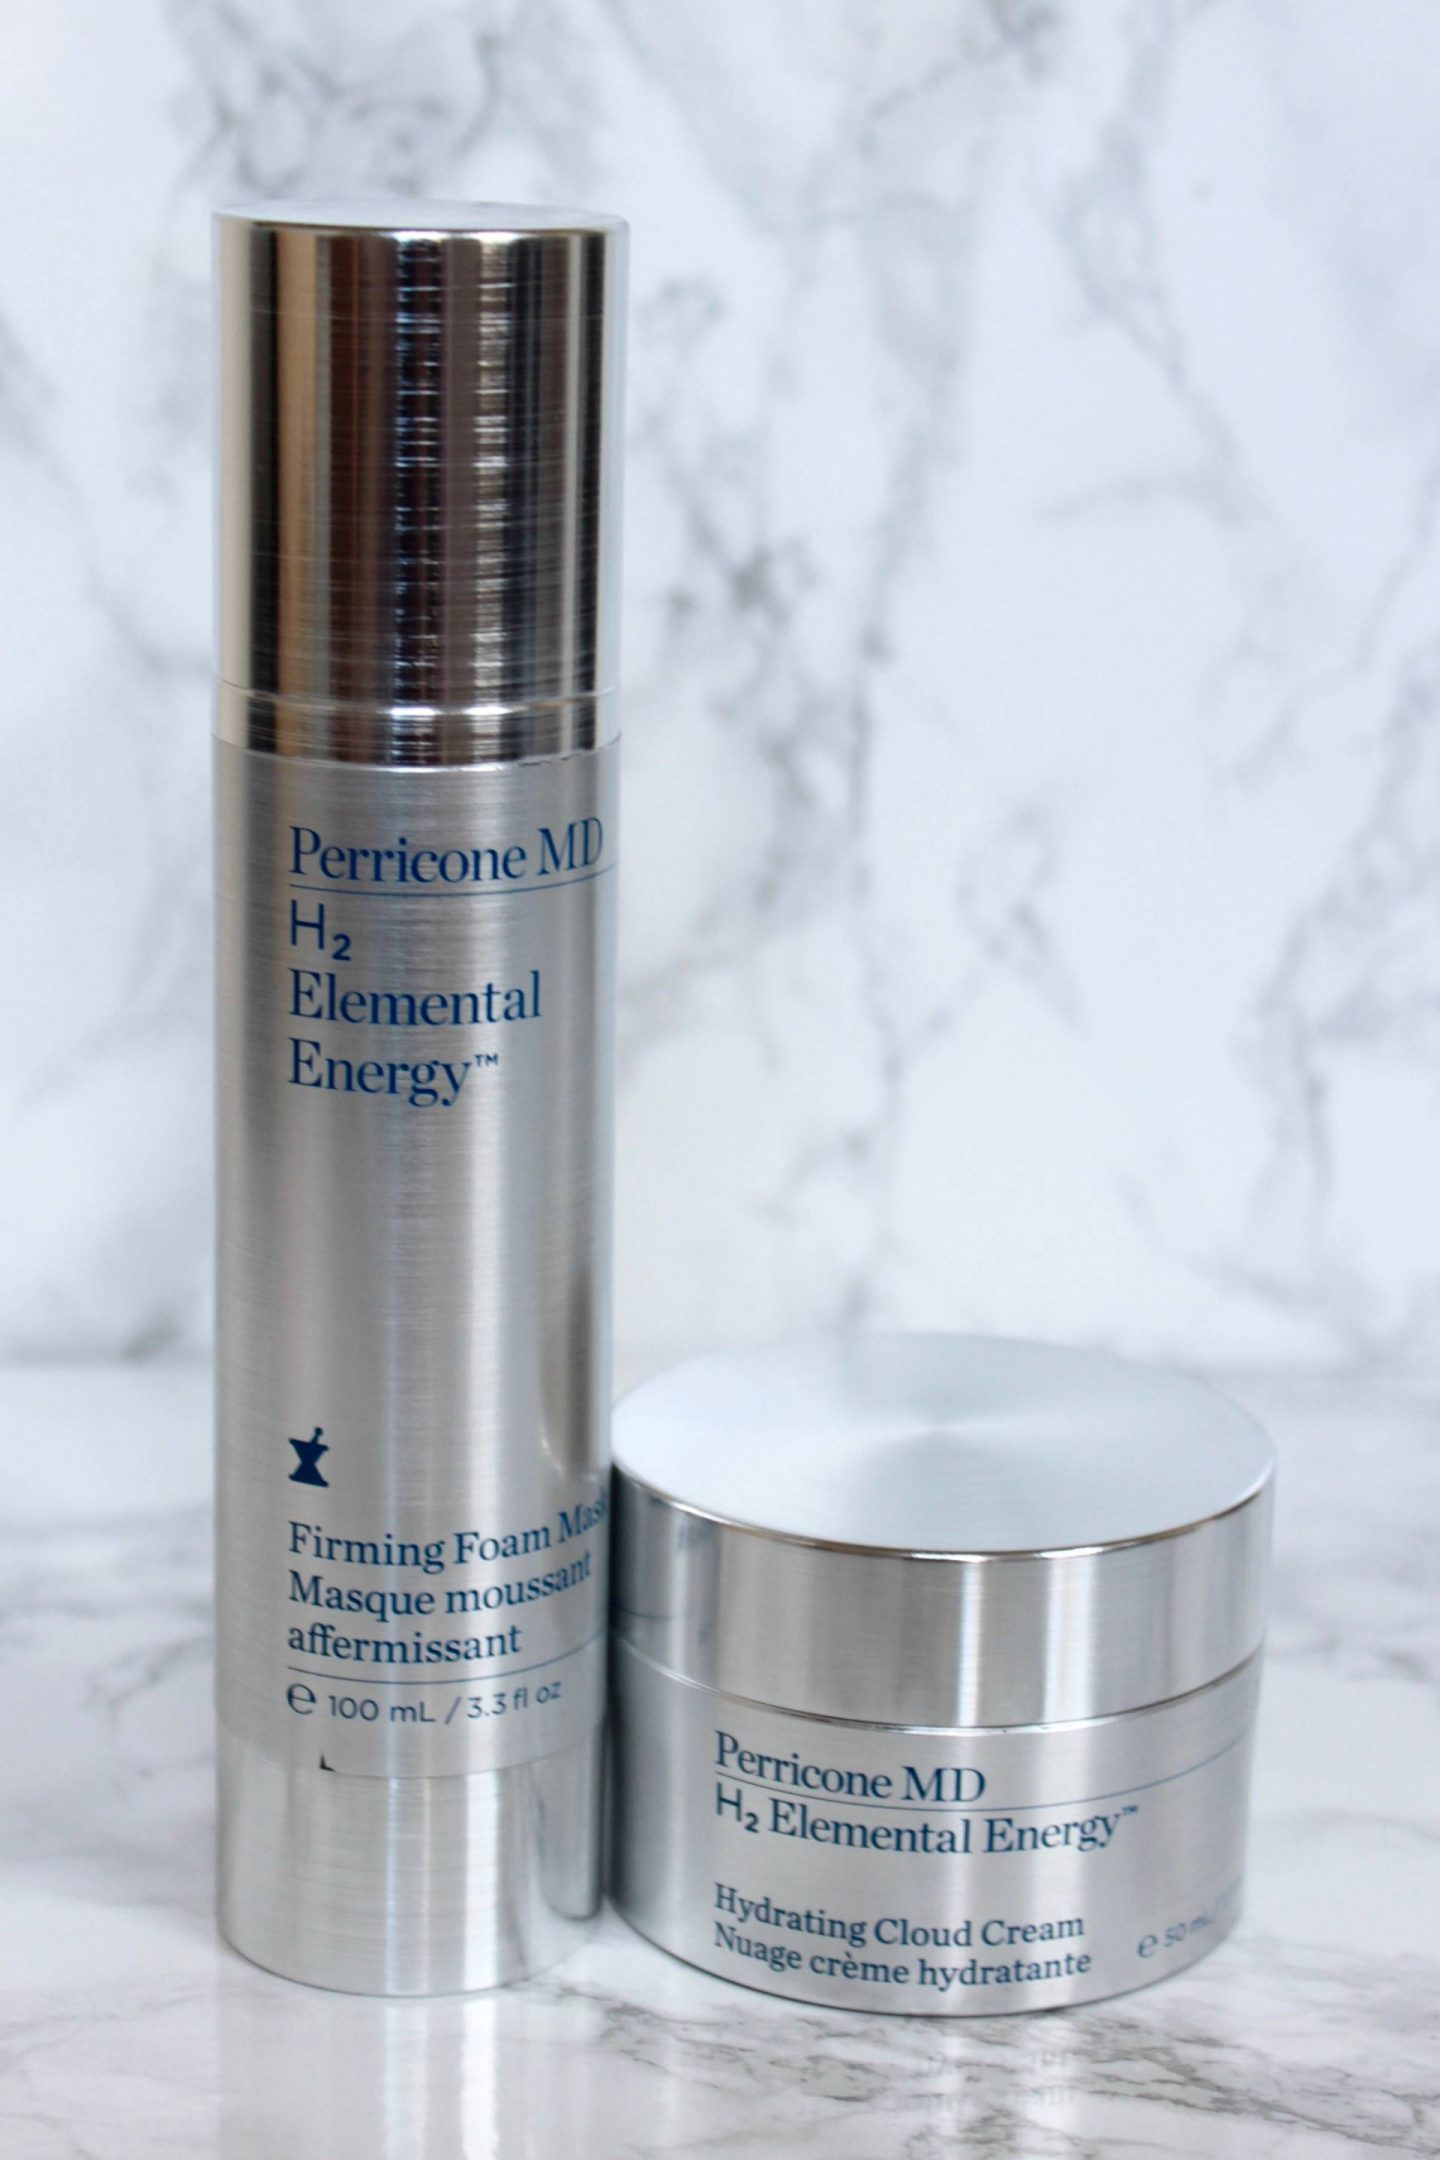 Perricone MD H2 Elemental Energy products